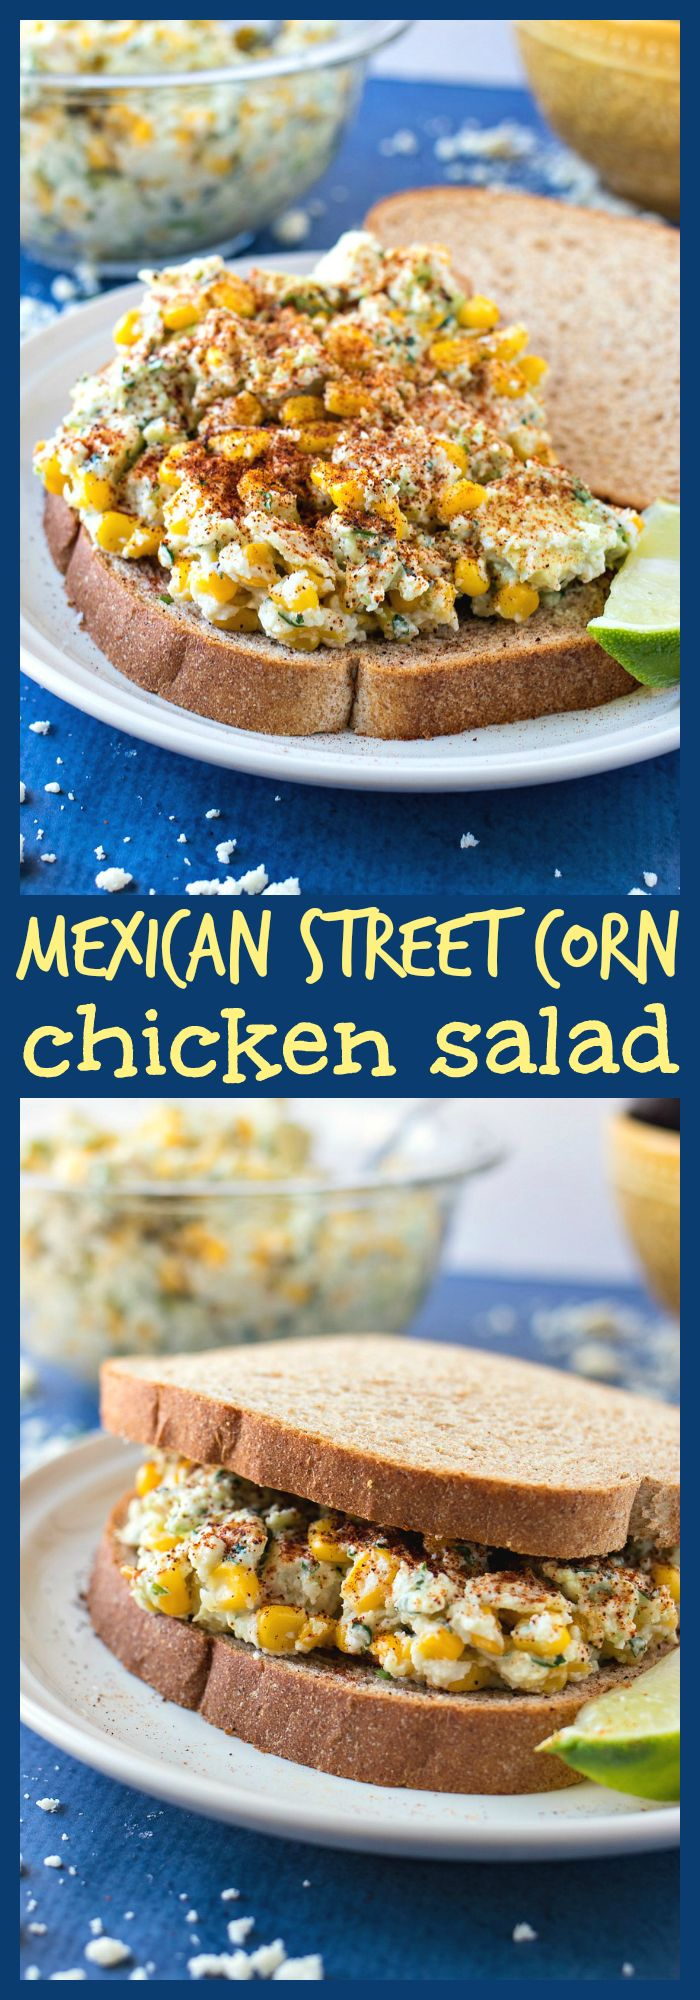 Mexican Street Corn Chicken Salad – All the flavors of Mexican Street Corn are mixed with chopped chicken breast and Greek yogurt to make a flavorful chicken salad that can be eaten as a sandwich or by itself. #ad #HispanicHeritageMonth @krogerco @AvosFromMexico @caciqueinc